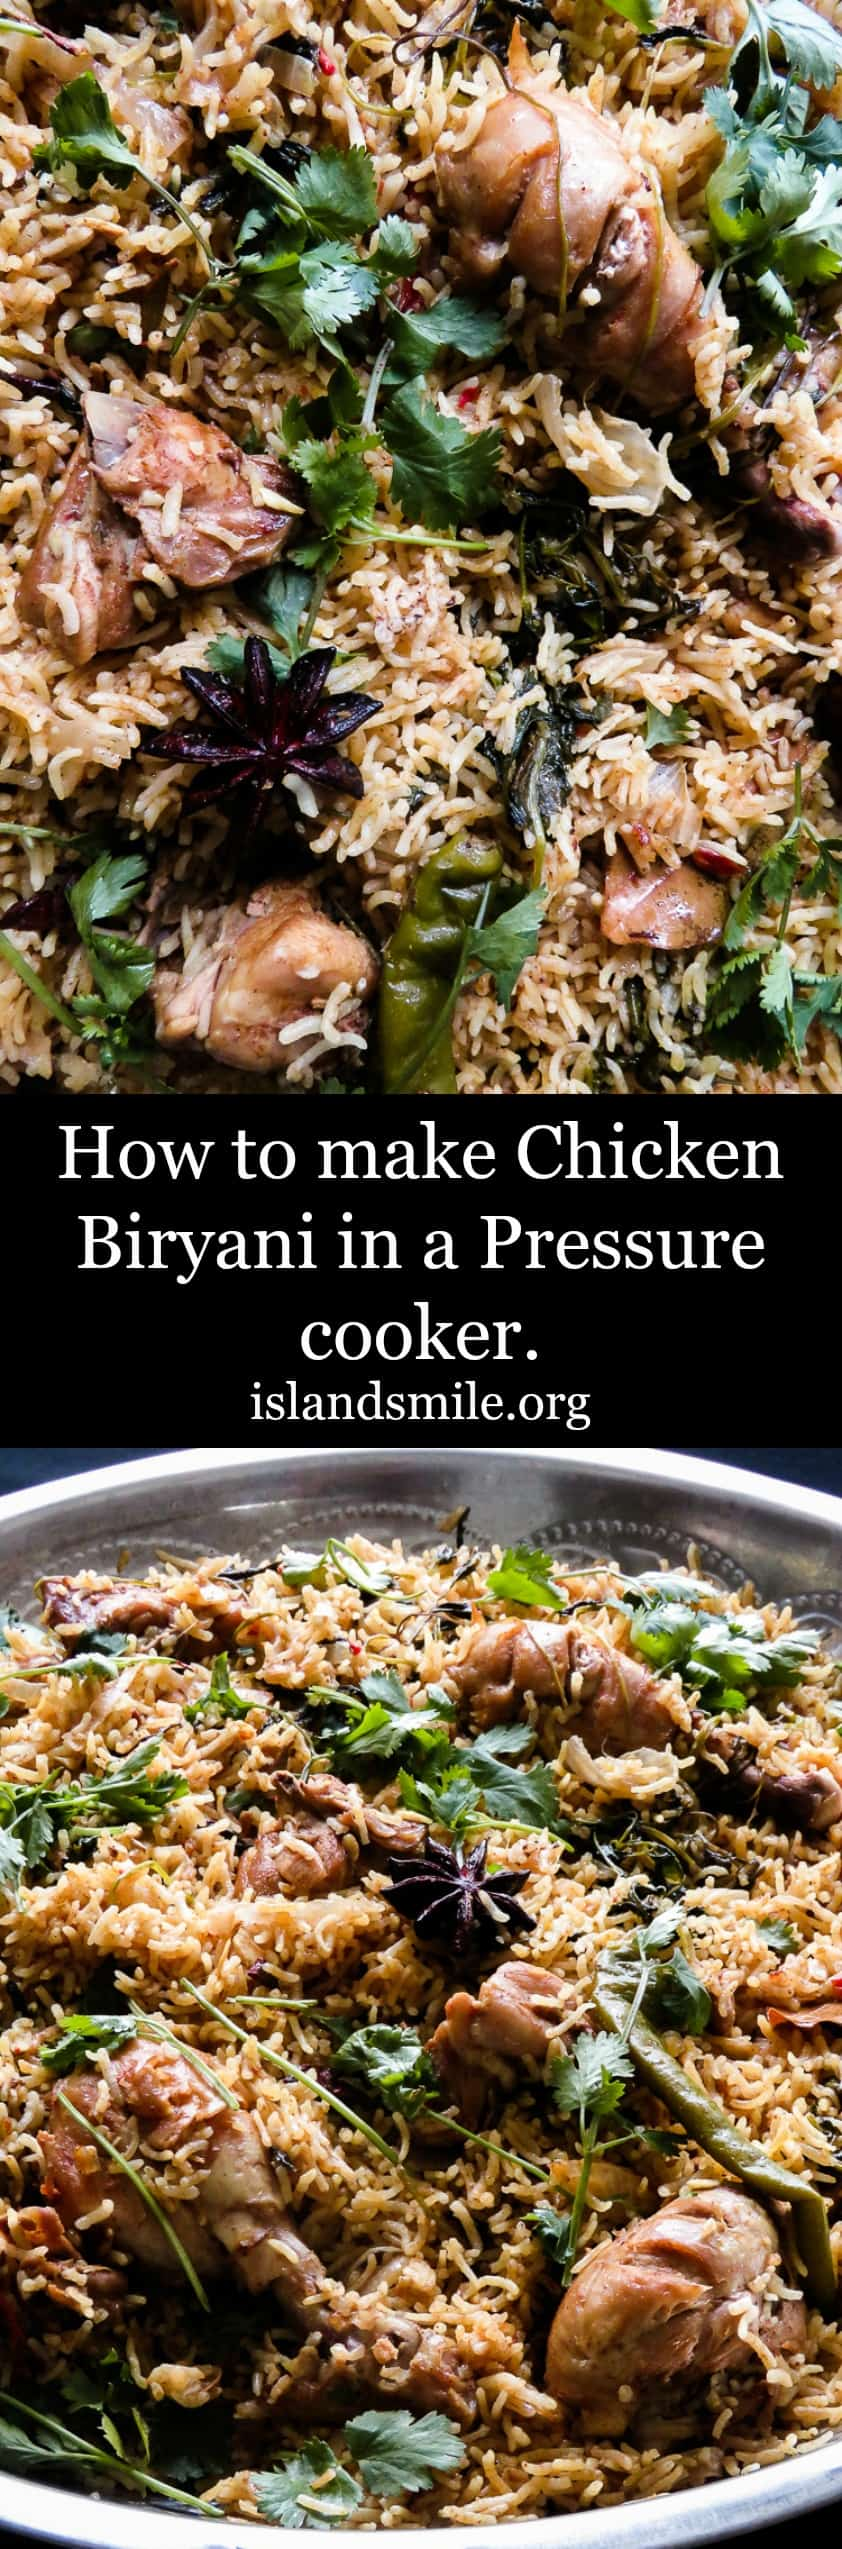 How to make Chicken Biryani in a Pressure cooker. Use your Pressure cooker to make this gorgeous, delectable one-pot Chicken Biryani for any festive occasion including Ramadan.